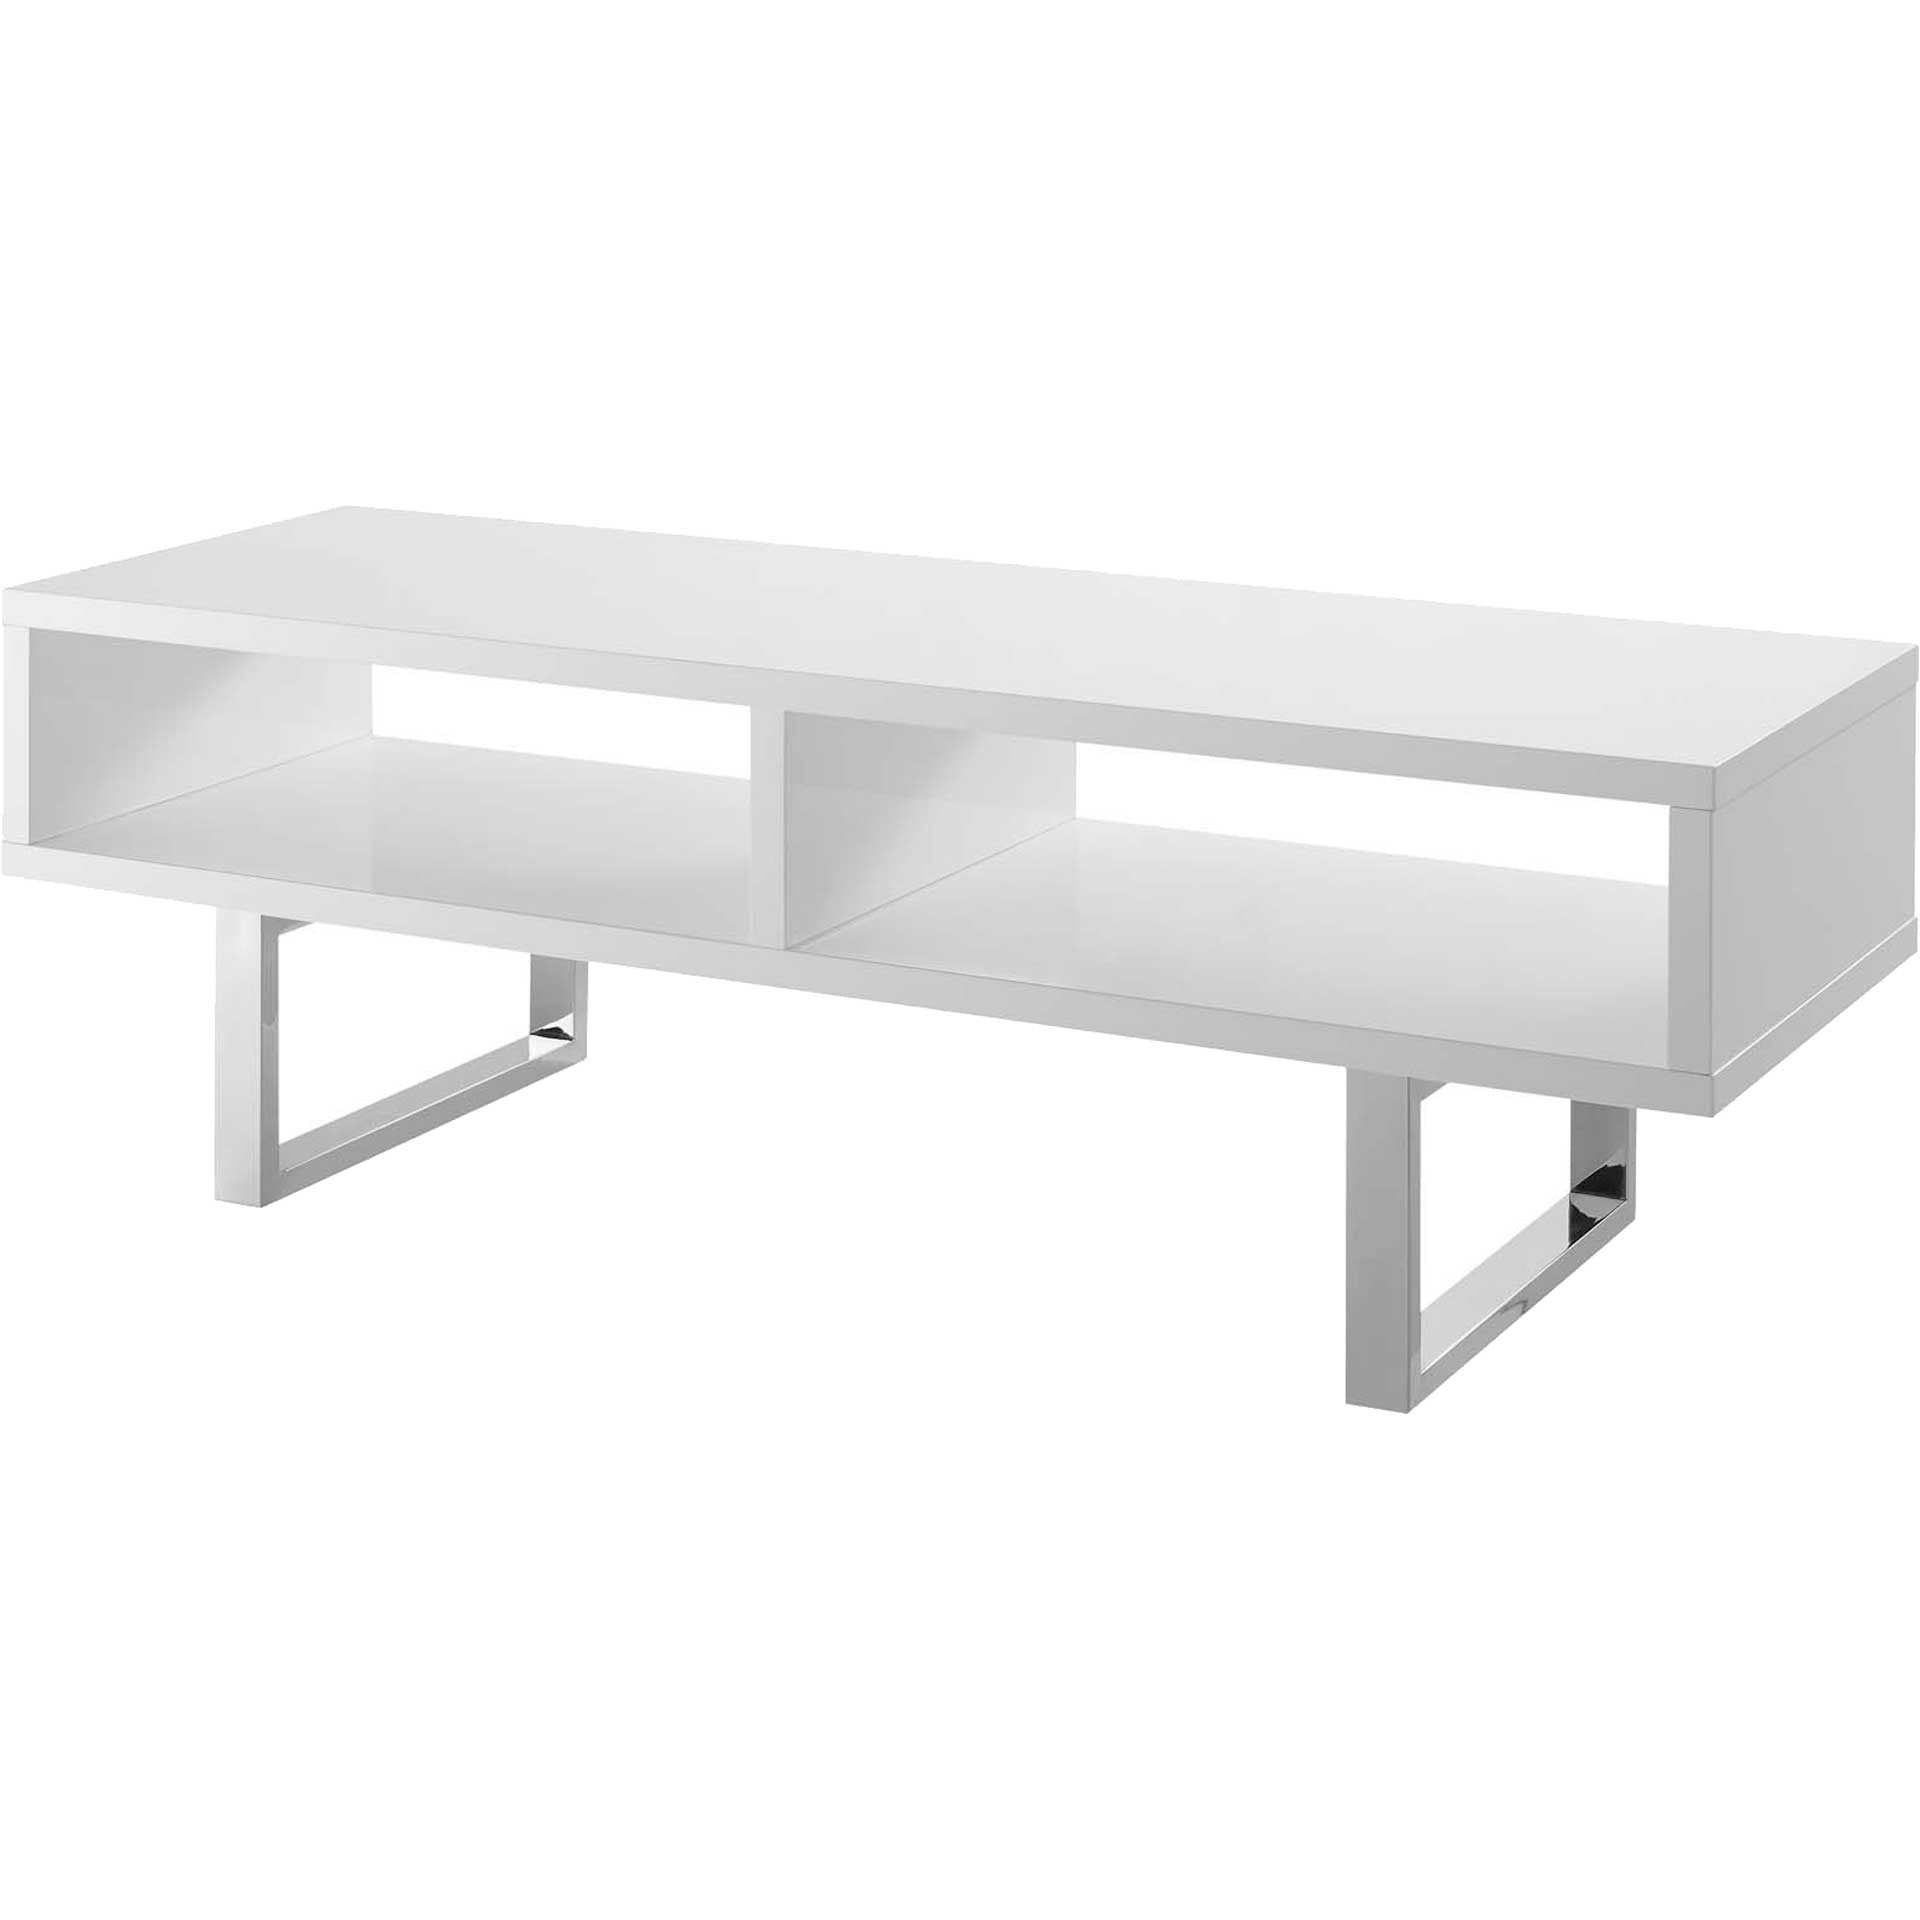 Arise Low Profile TV Stand White